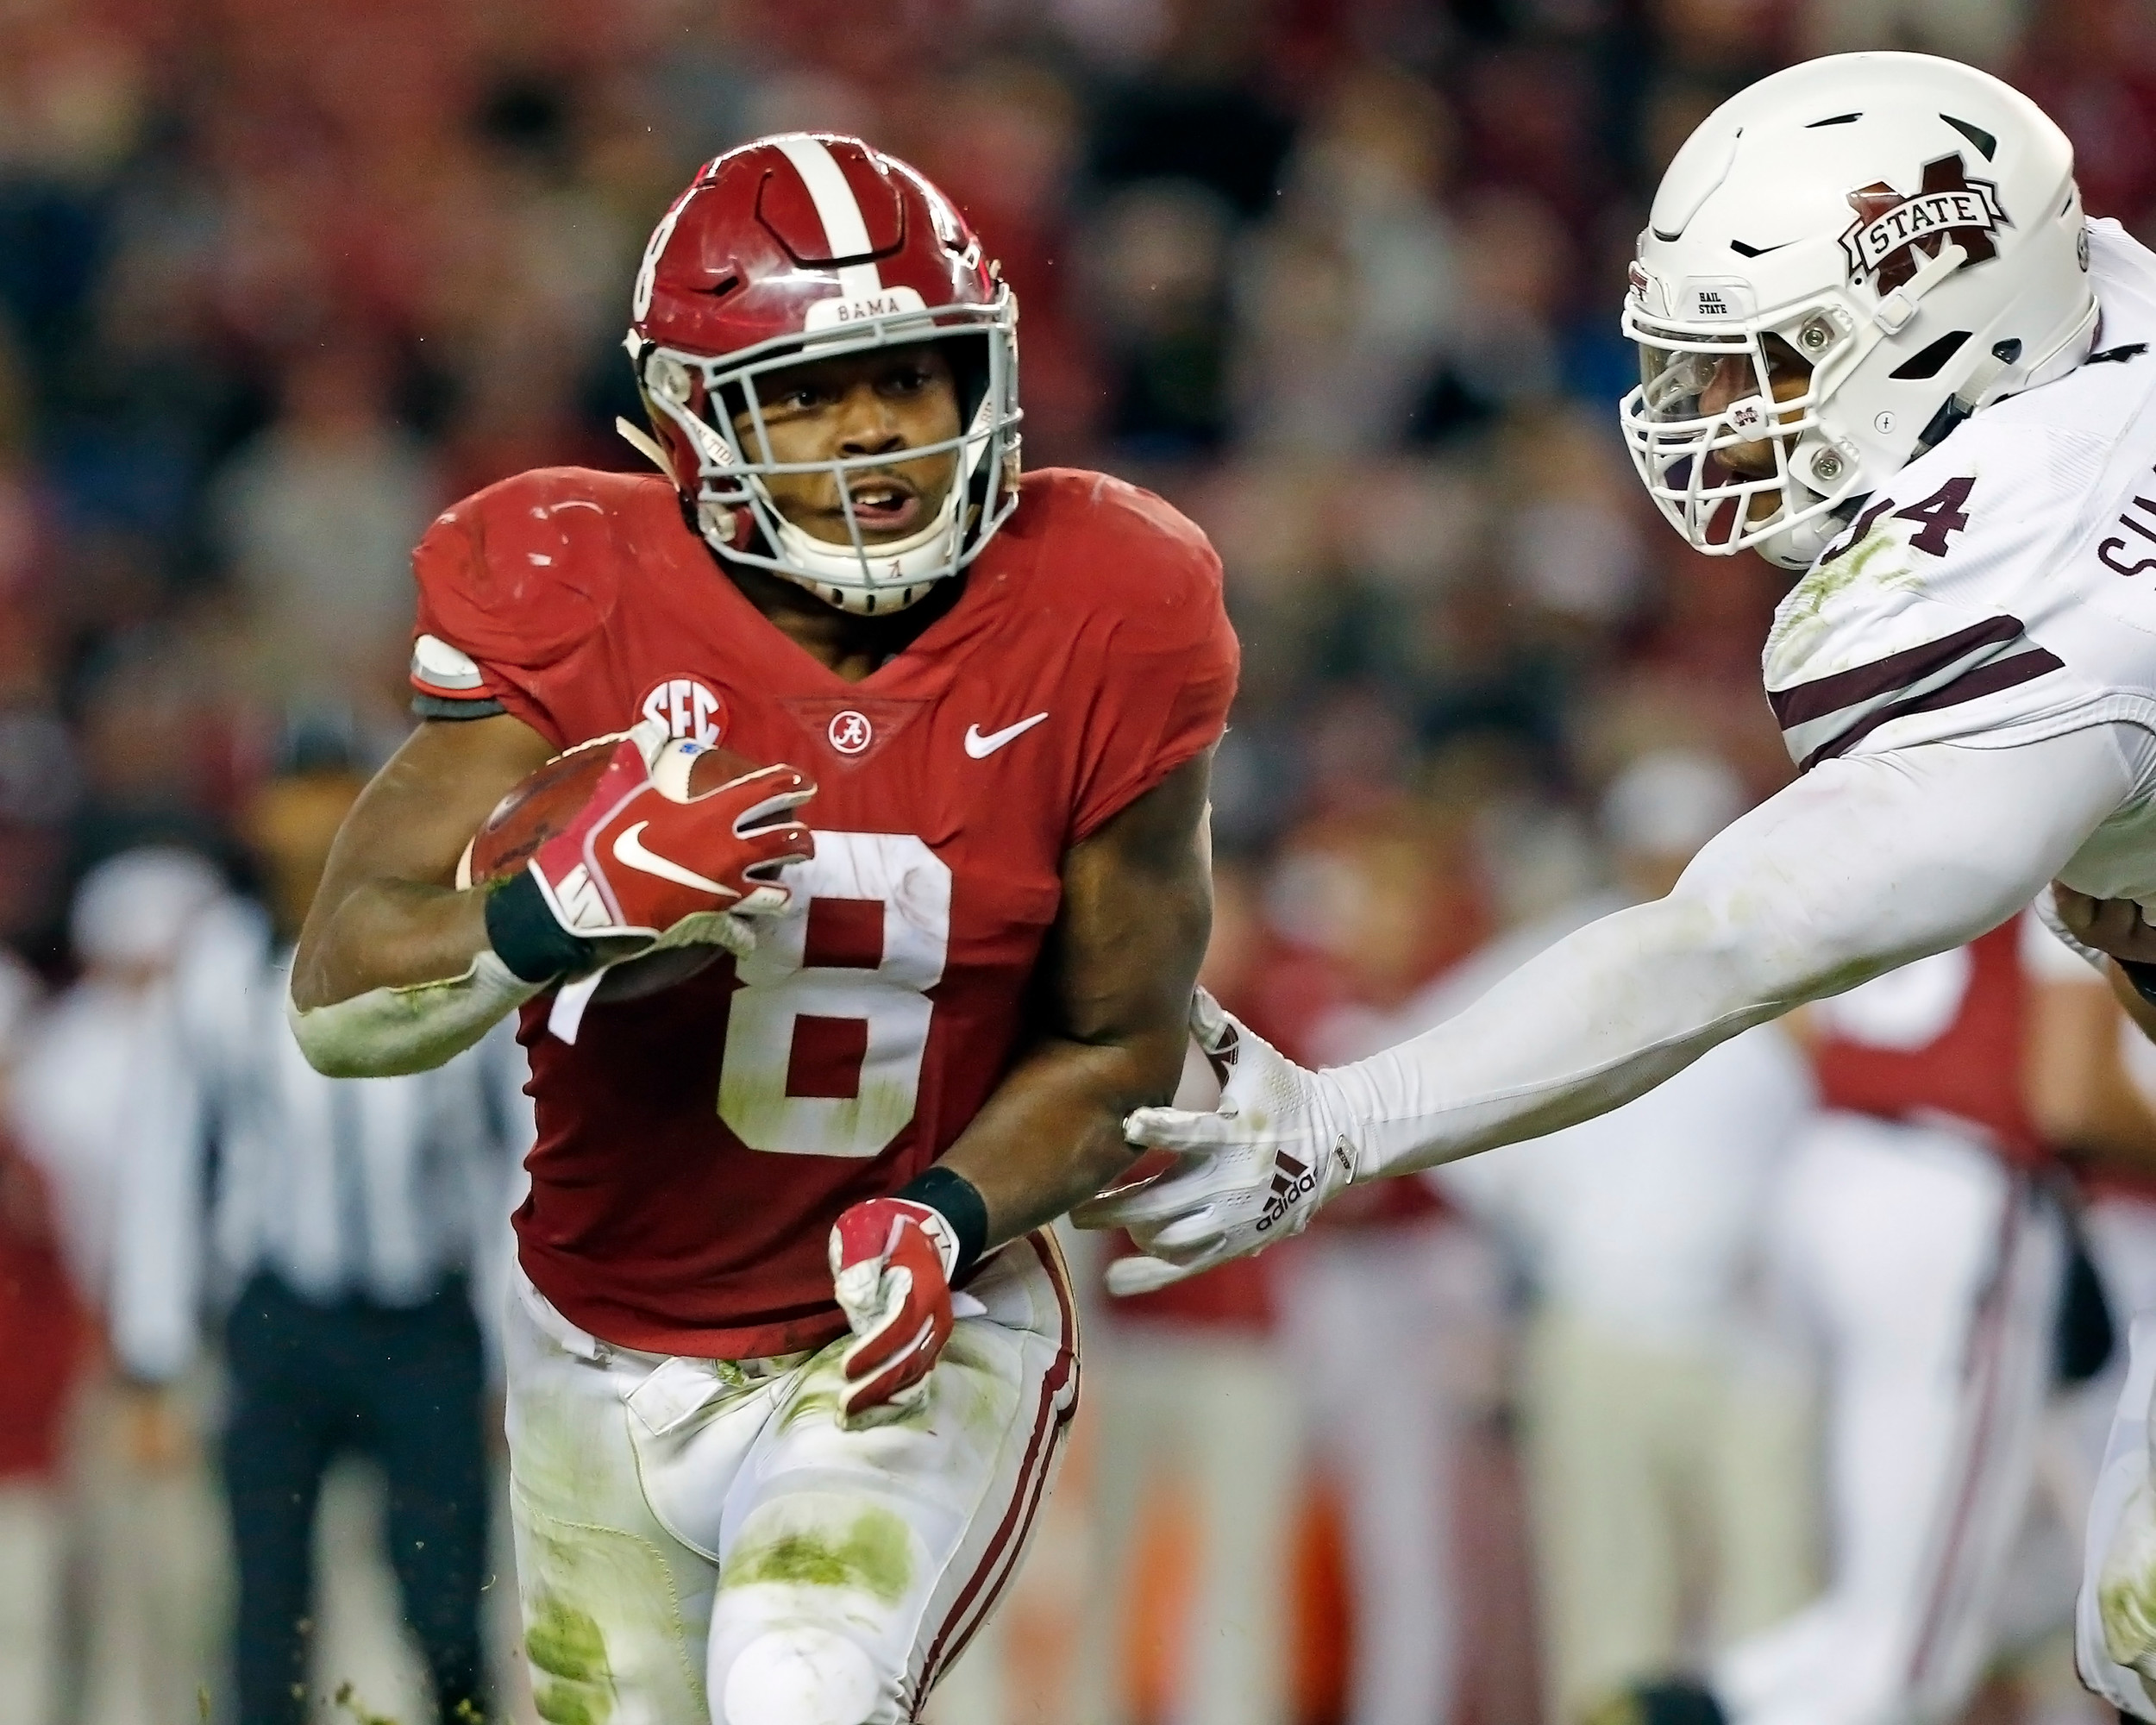 Alabama Crimson Tide running back Josh Jacobs (8) rushes during the second half of the game between Mississippi State and the University of Alabama at Bryant-Denny Stadium in Tuscaloosa, Al. Credit: Jason Clark / Daily Mountain Eagle